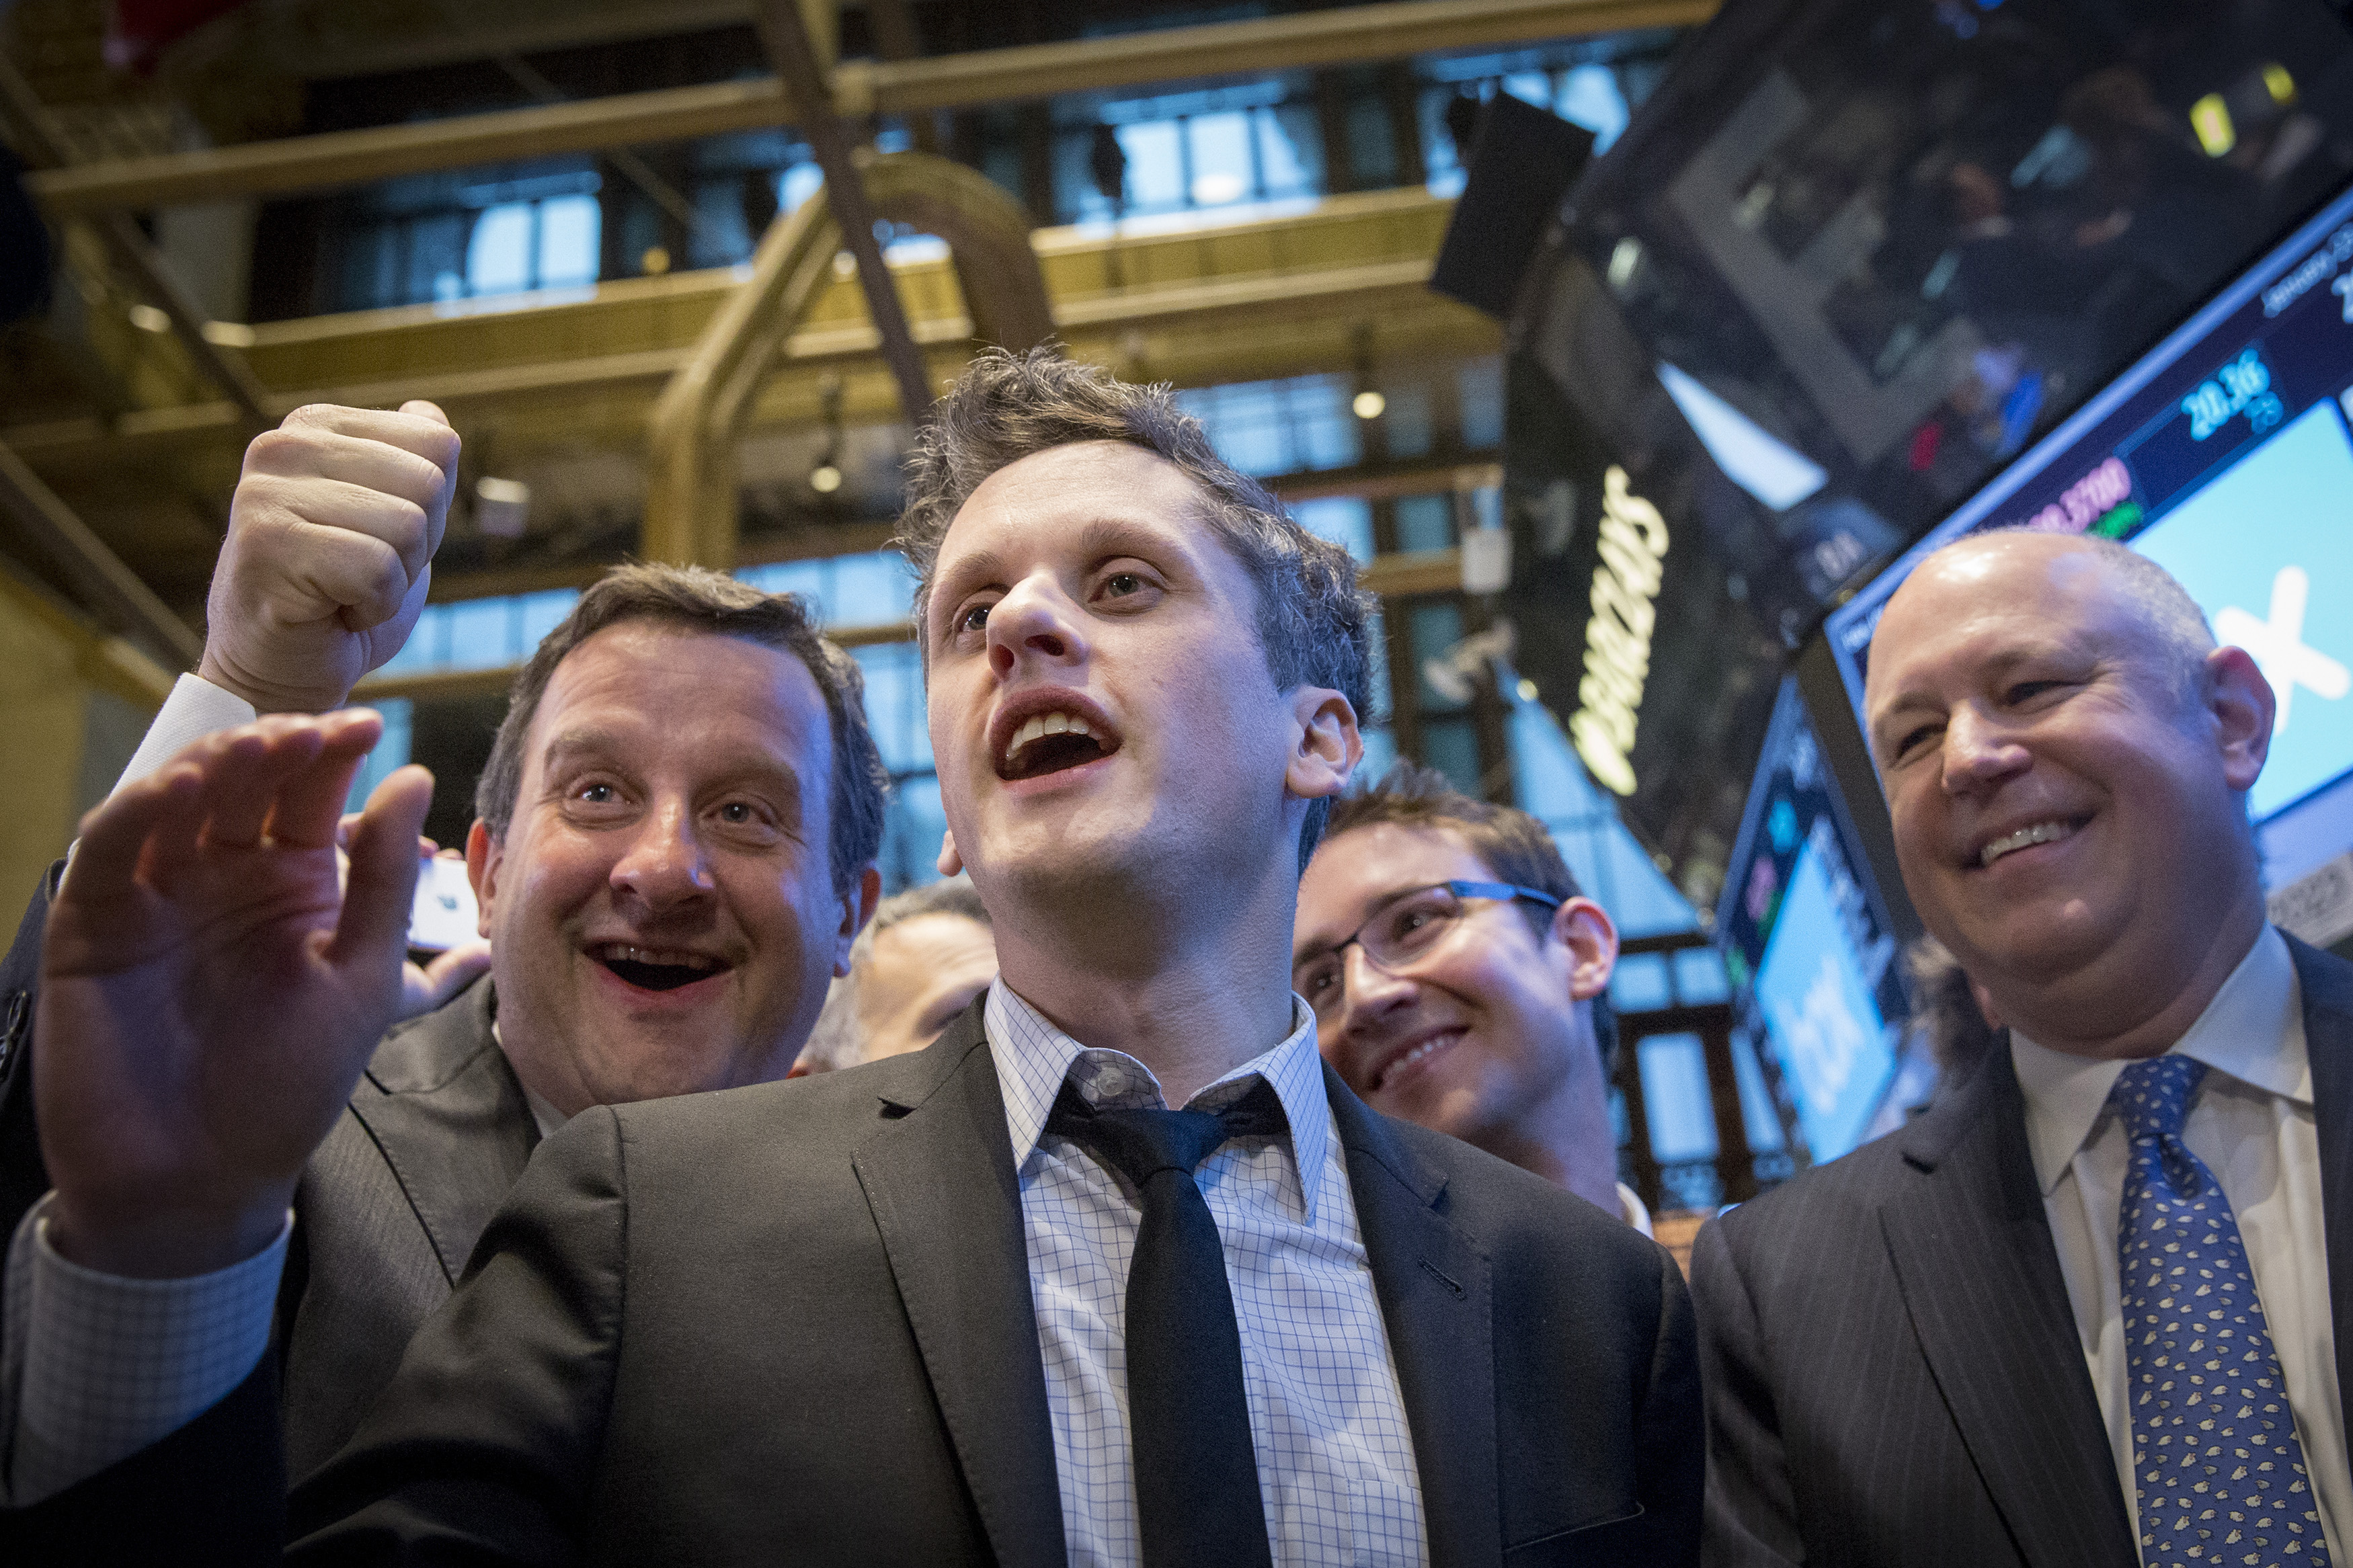 Box Inc Co-Founder and CEO Levie and Co-Founder and CFO Smith celebrate their company's IPO on the floor of the New York Stock Exchange